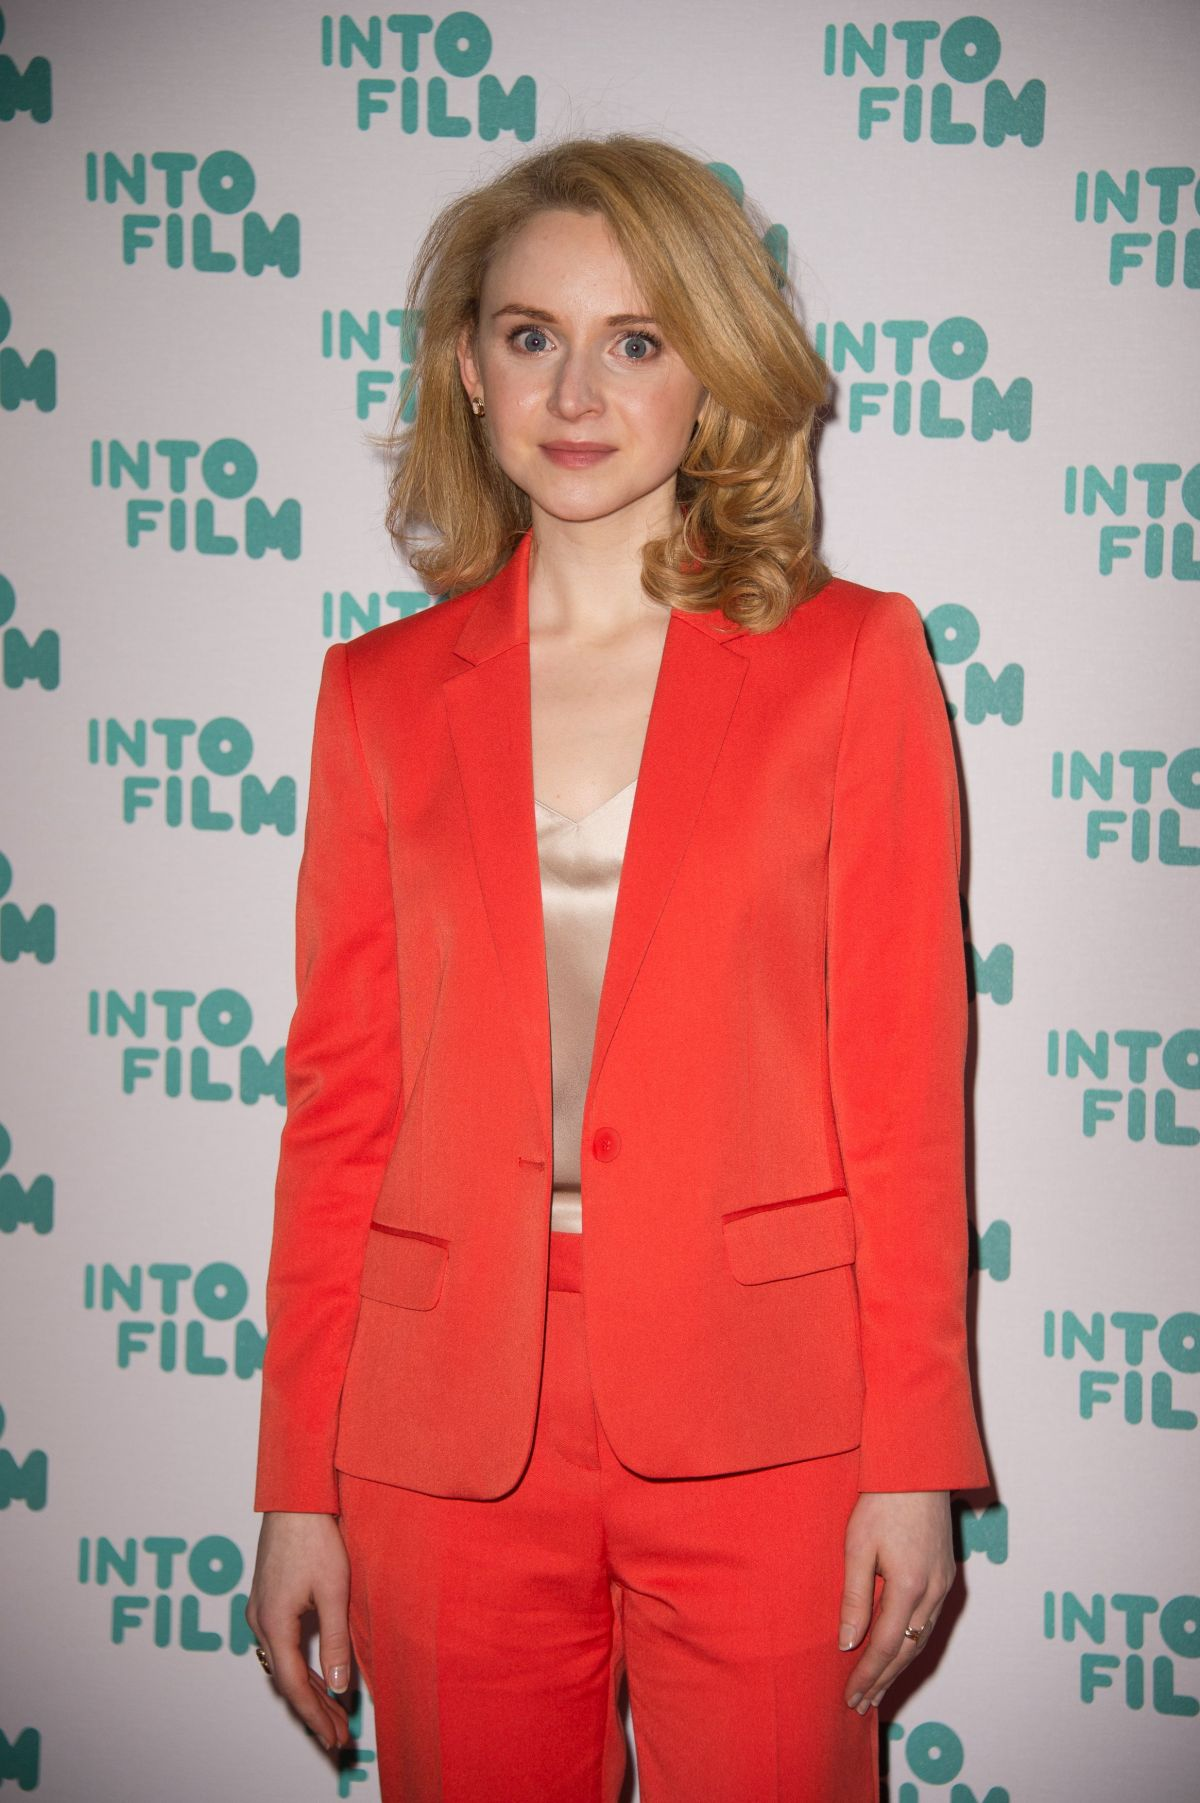 JENN MURRAY at Into Film Awards in London 03/14/2017